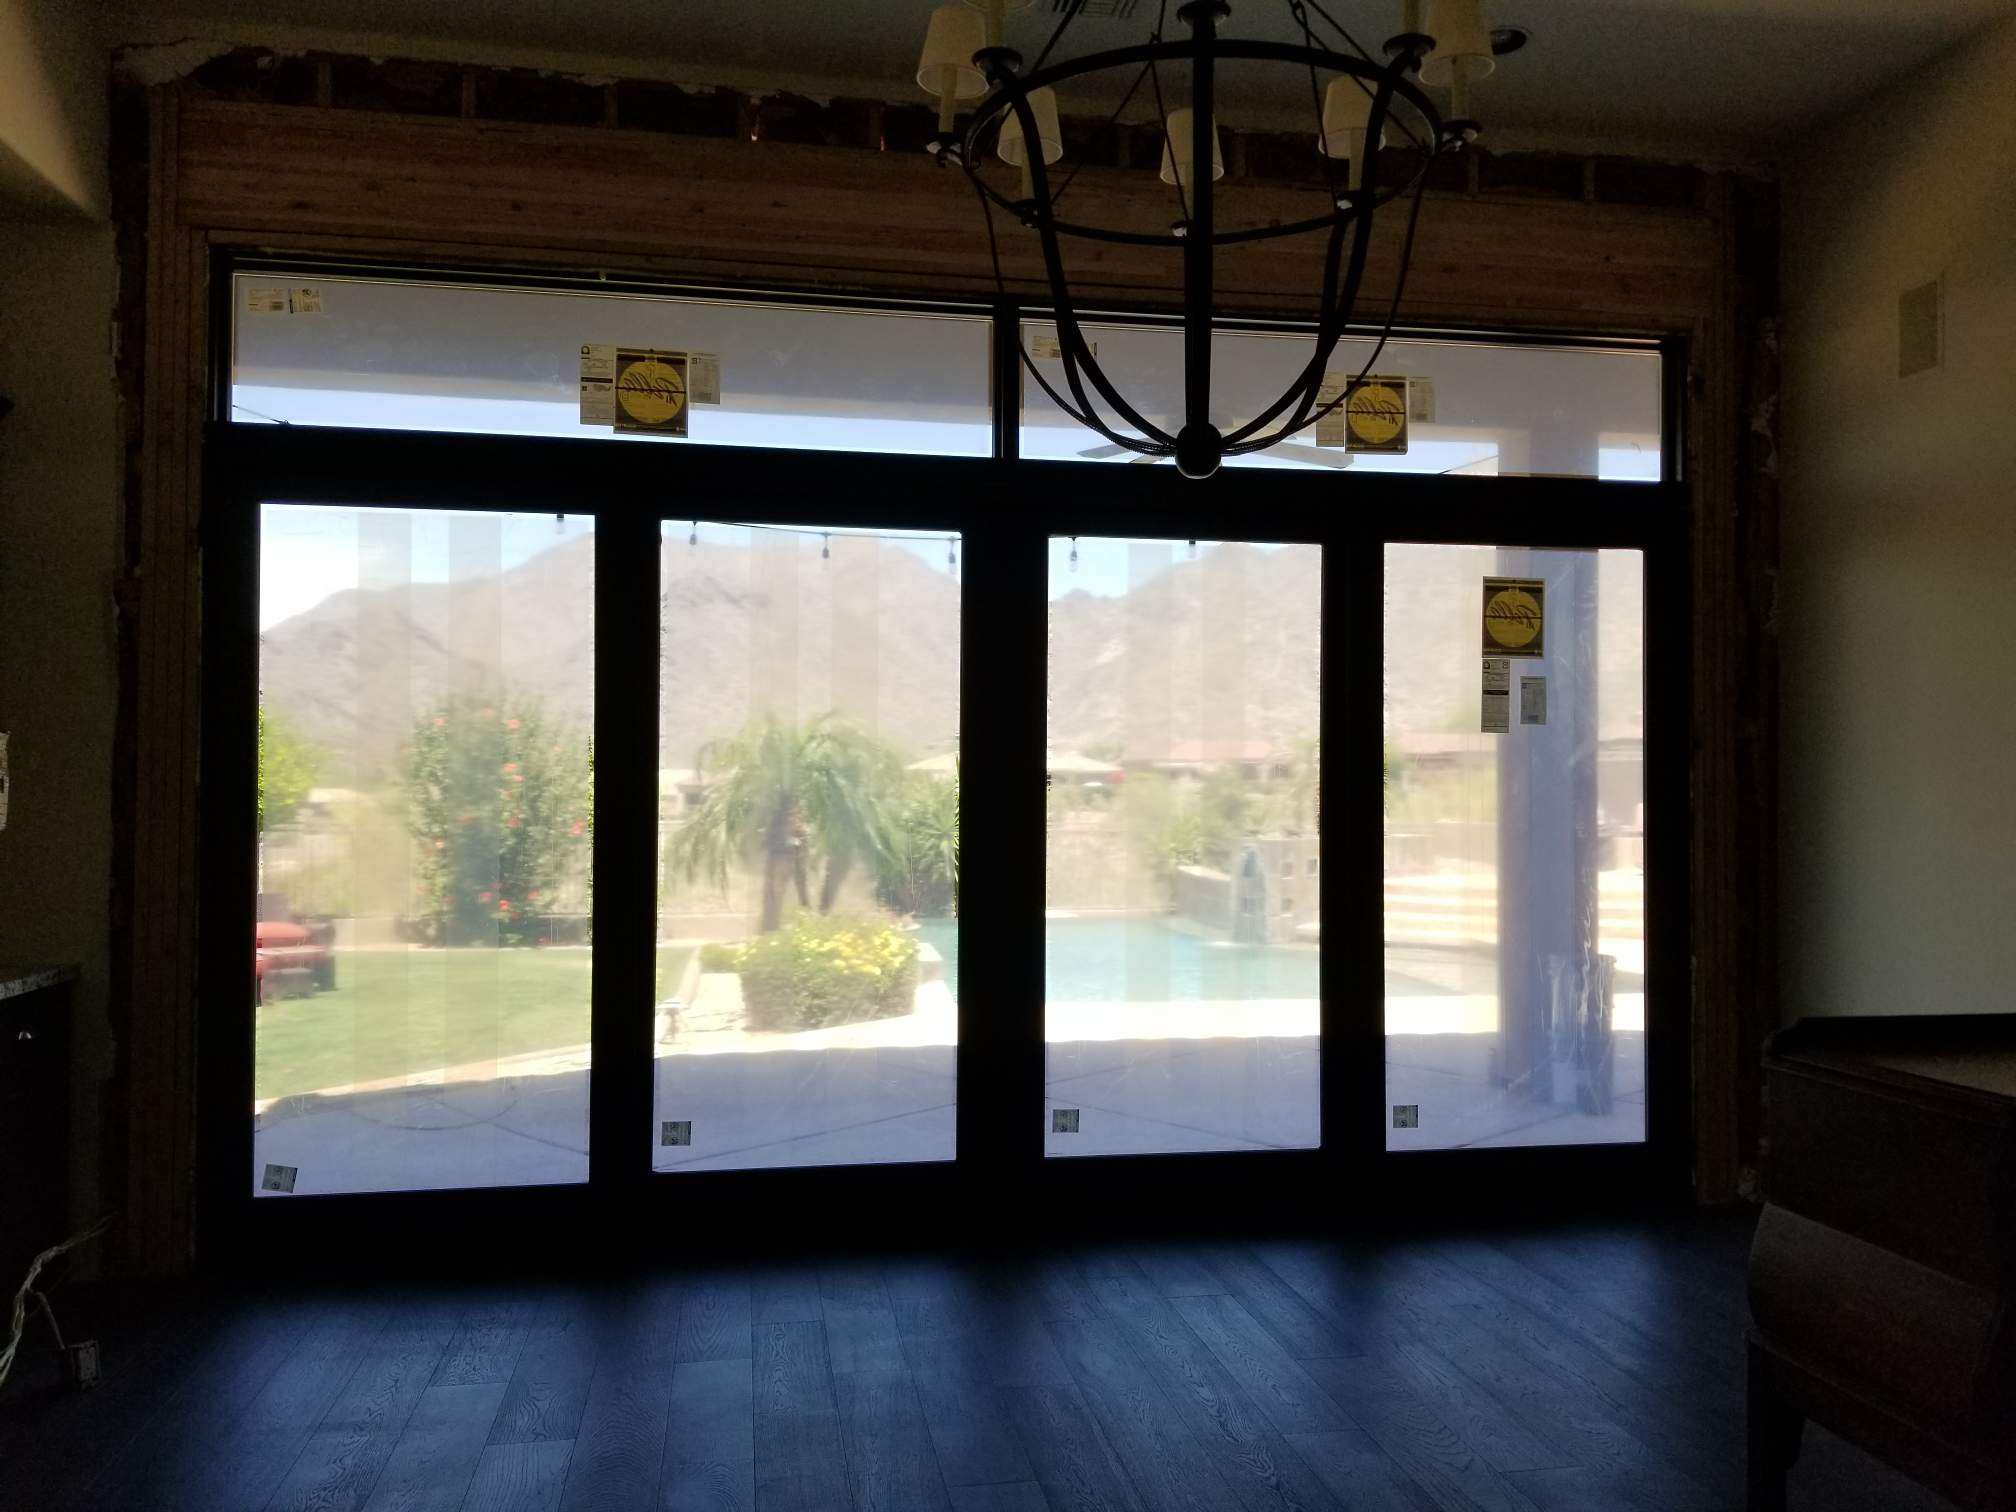 Arizona Window and Door in Scottsdale and Tucson showing large panel doors